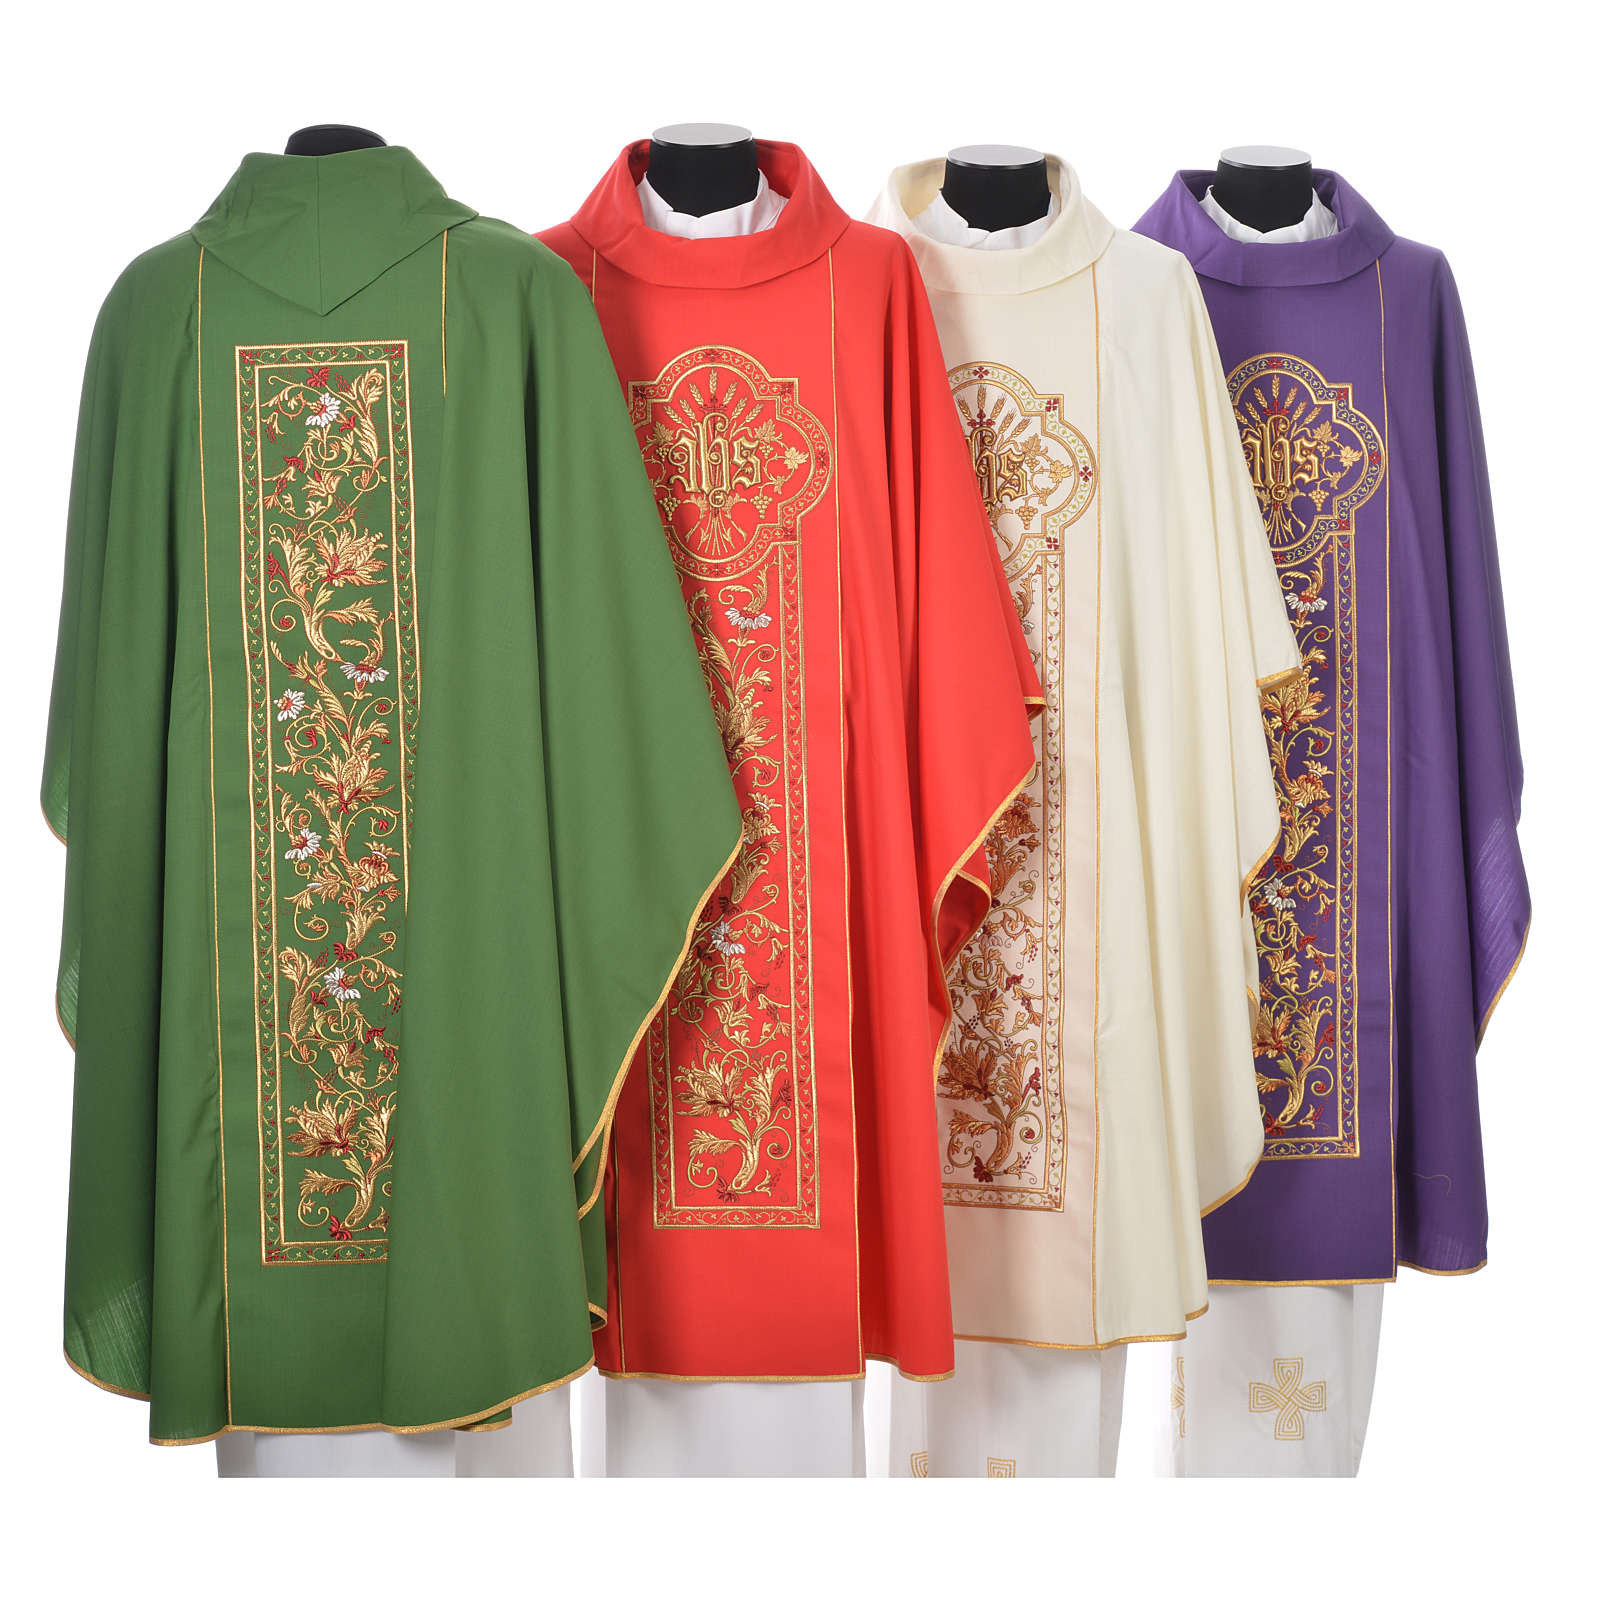 Chasuble in 100% wool, IHS, ears of wheat embroidery 4